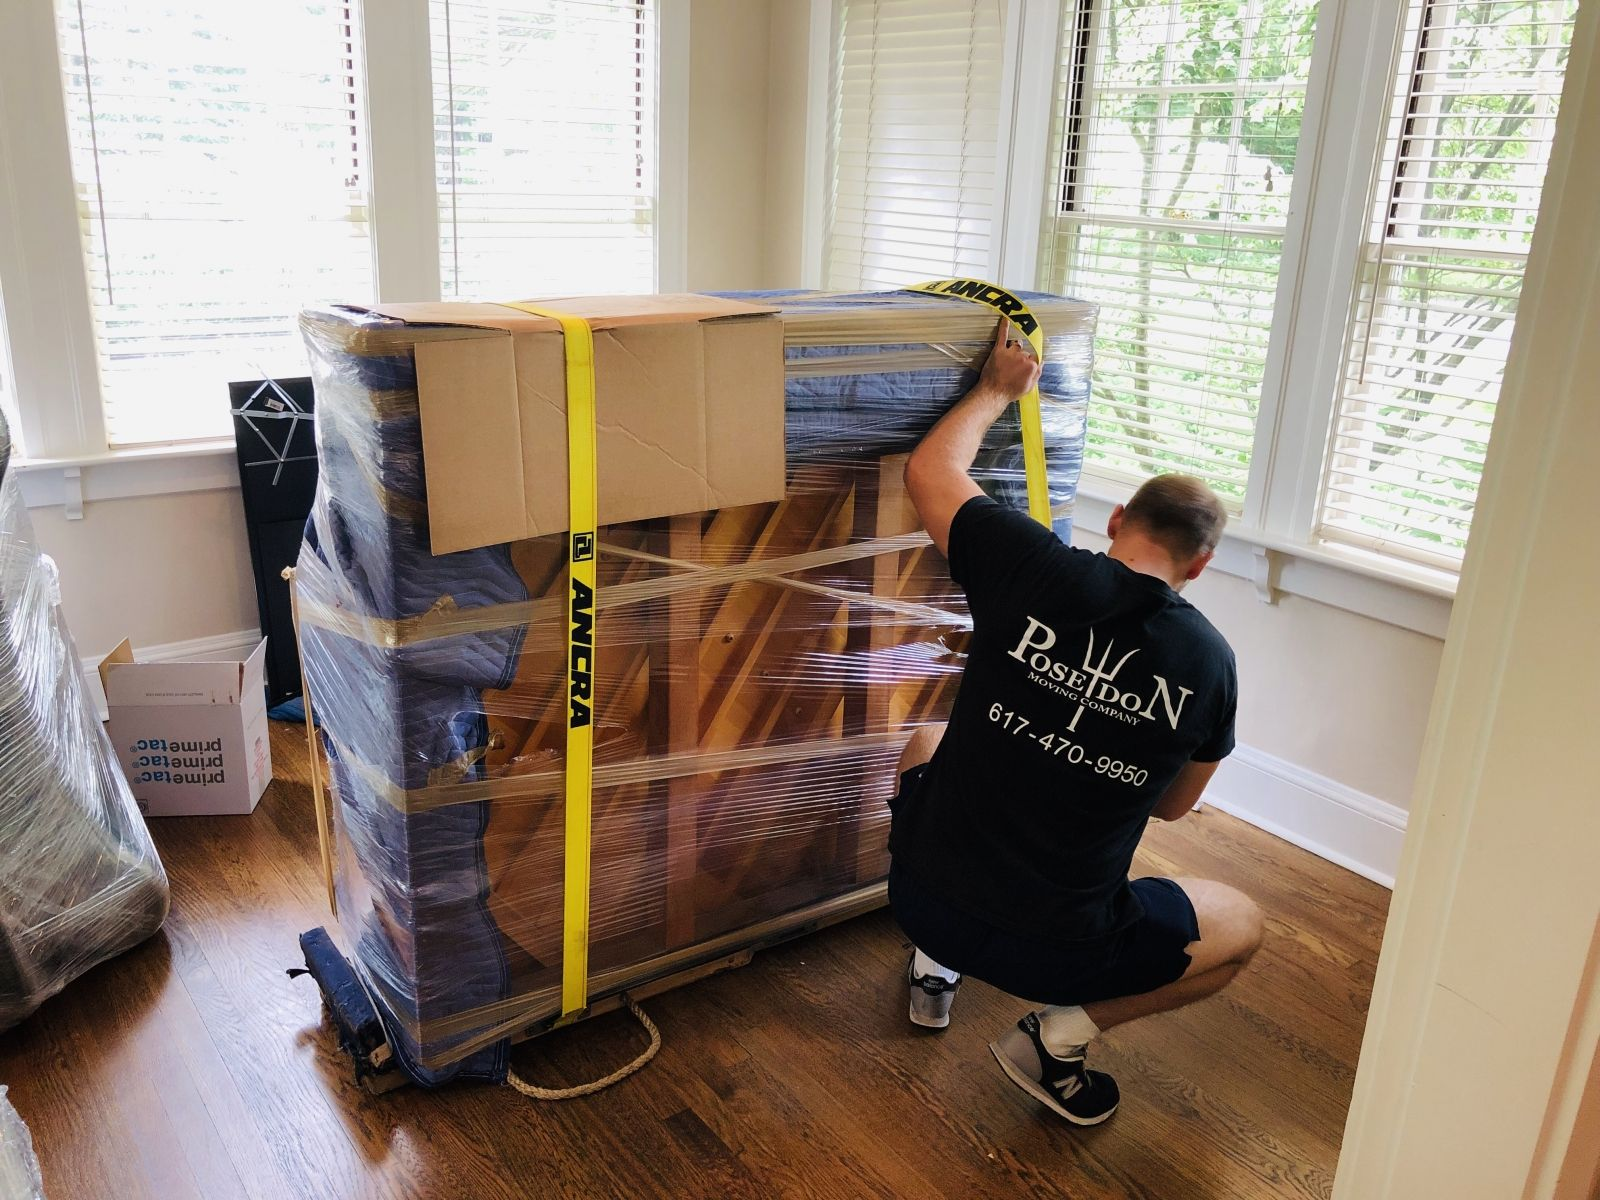 Commercial And Residential Movers Dc To Nyc Movers In 2020 Cheap Storage Storage Spaces Storage Unit